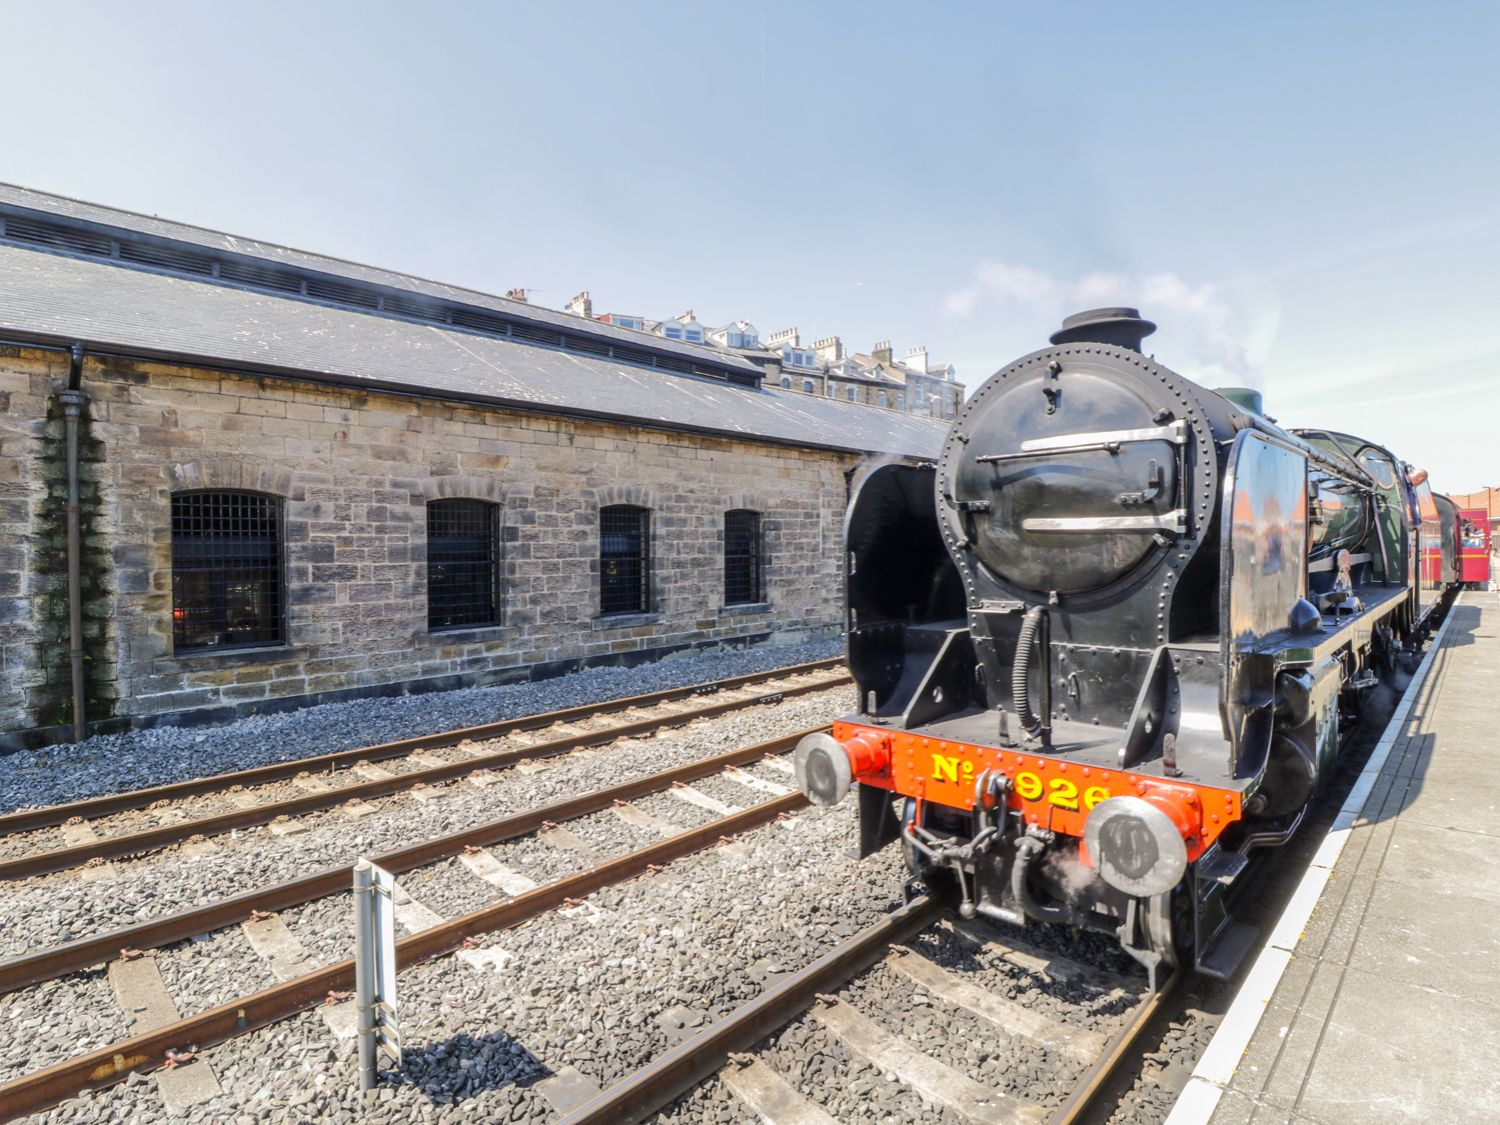 Duchess of Hamilton @ Engine Shed in Whitby - sleeps 2 people